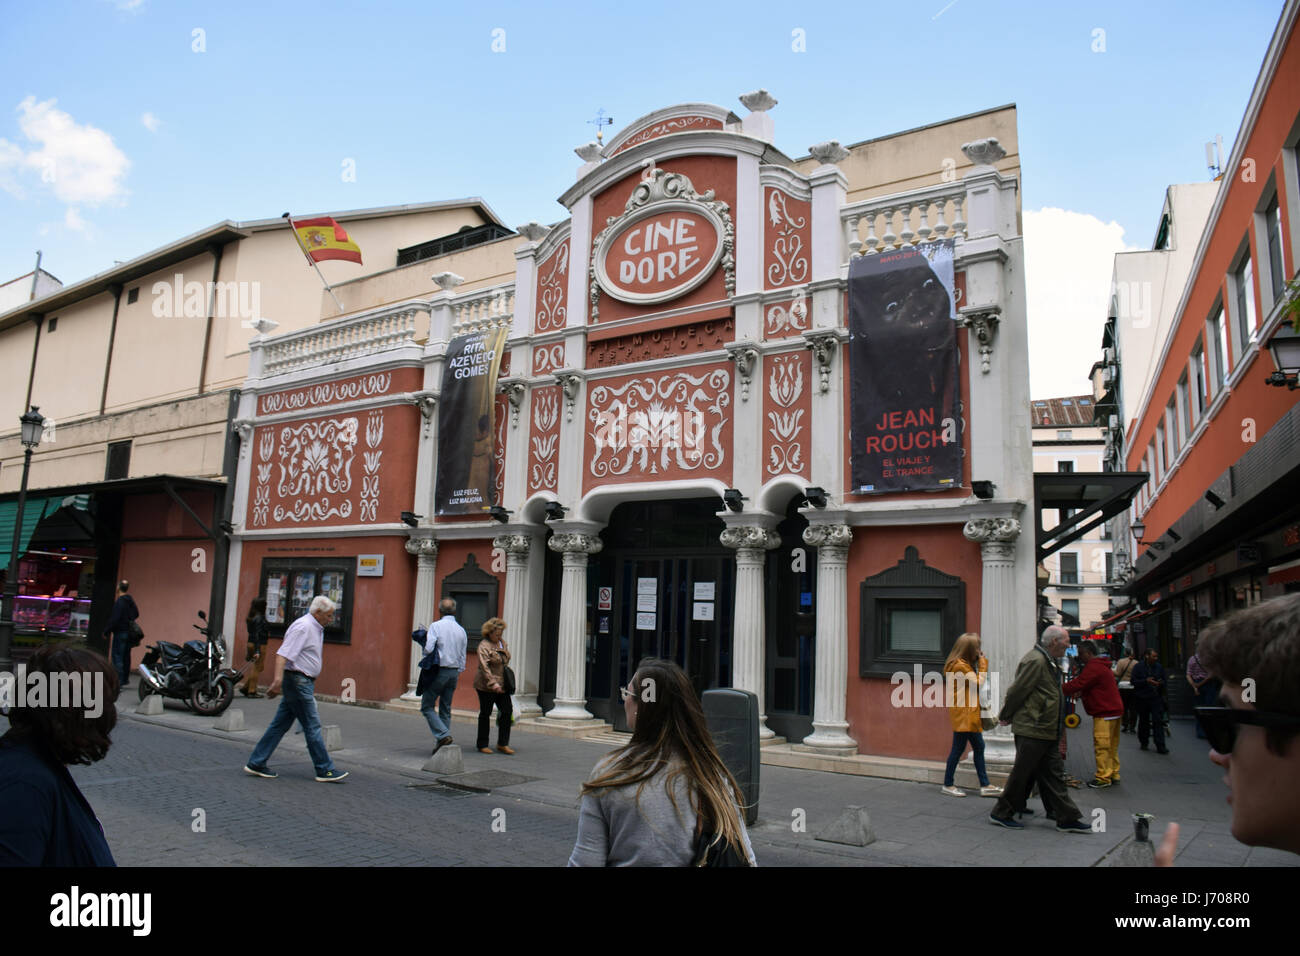 Cine Dore, oldest cinema in Madrid, dating from 1922, Spain - Stock Image